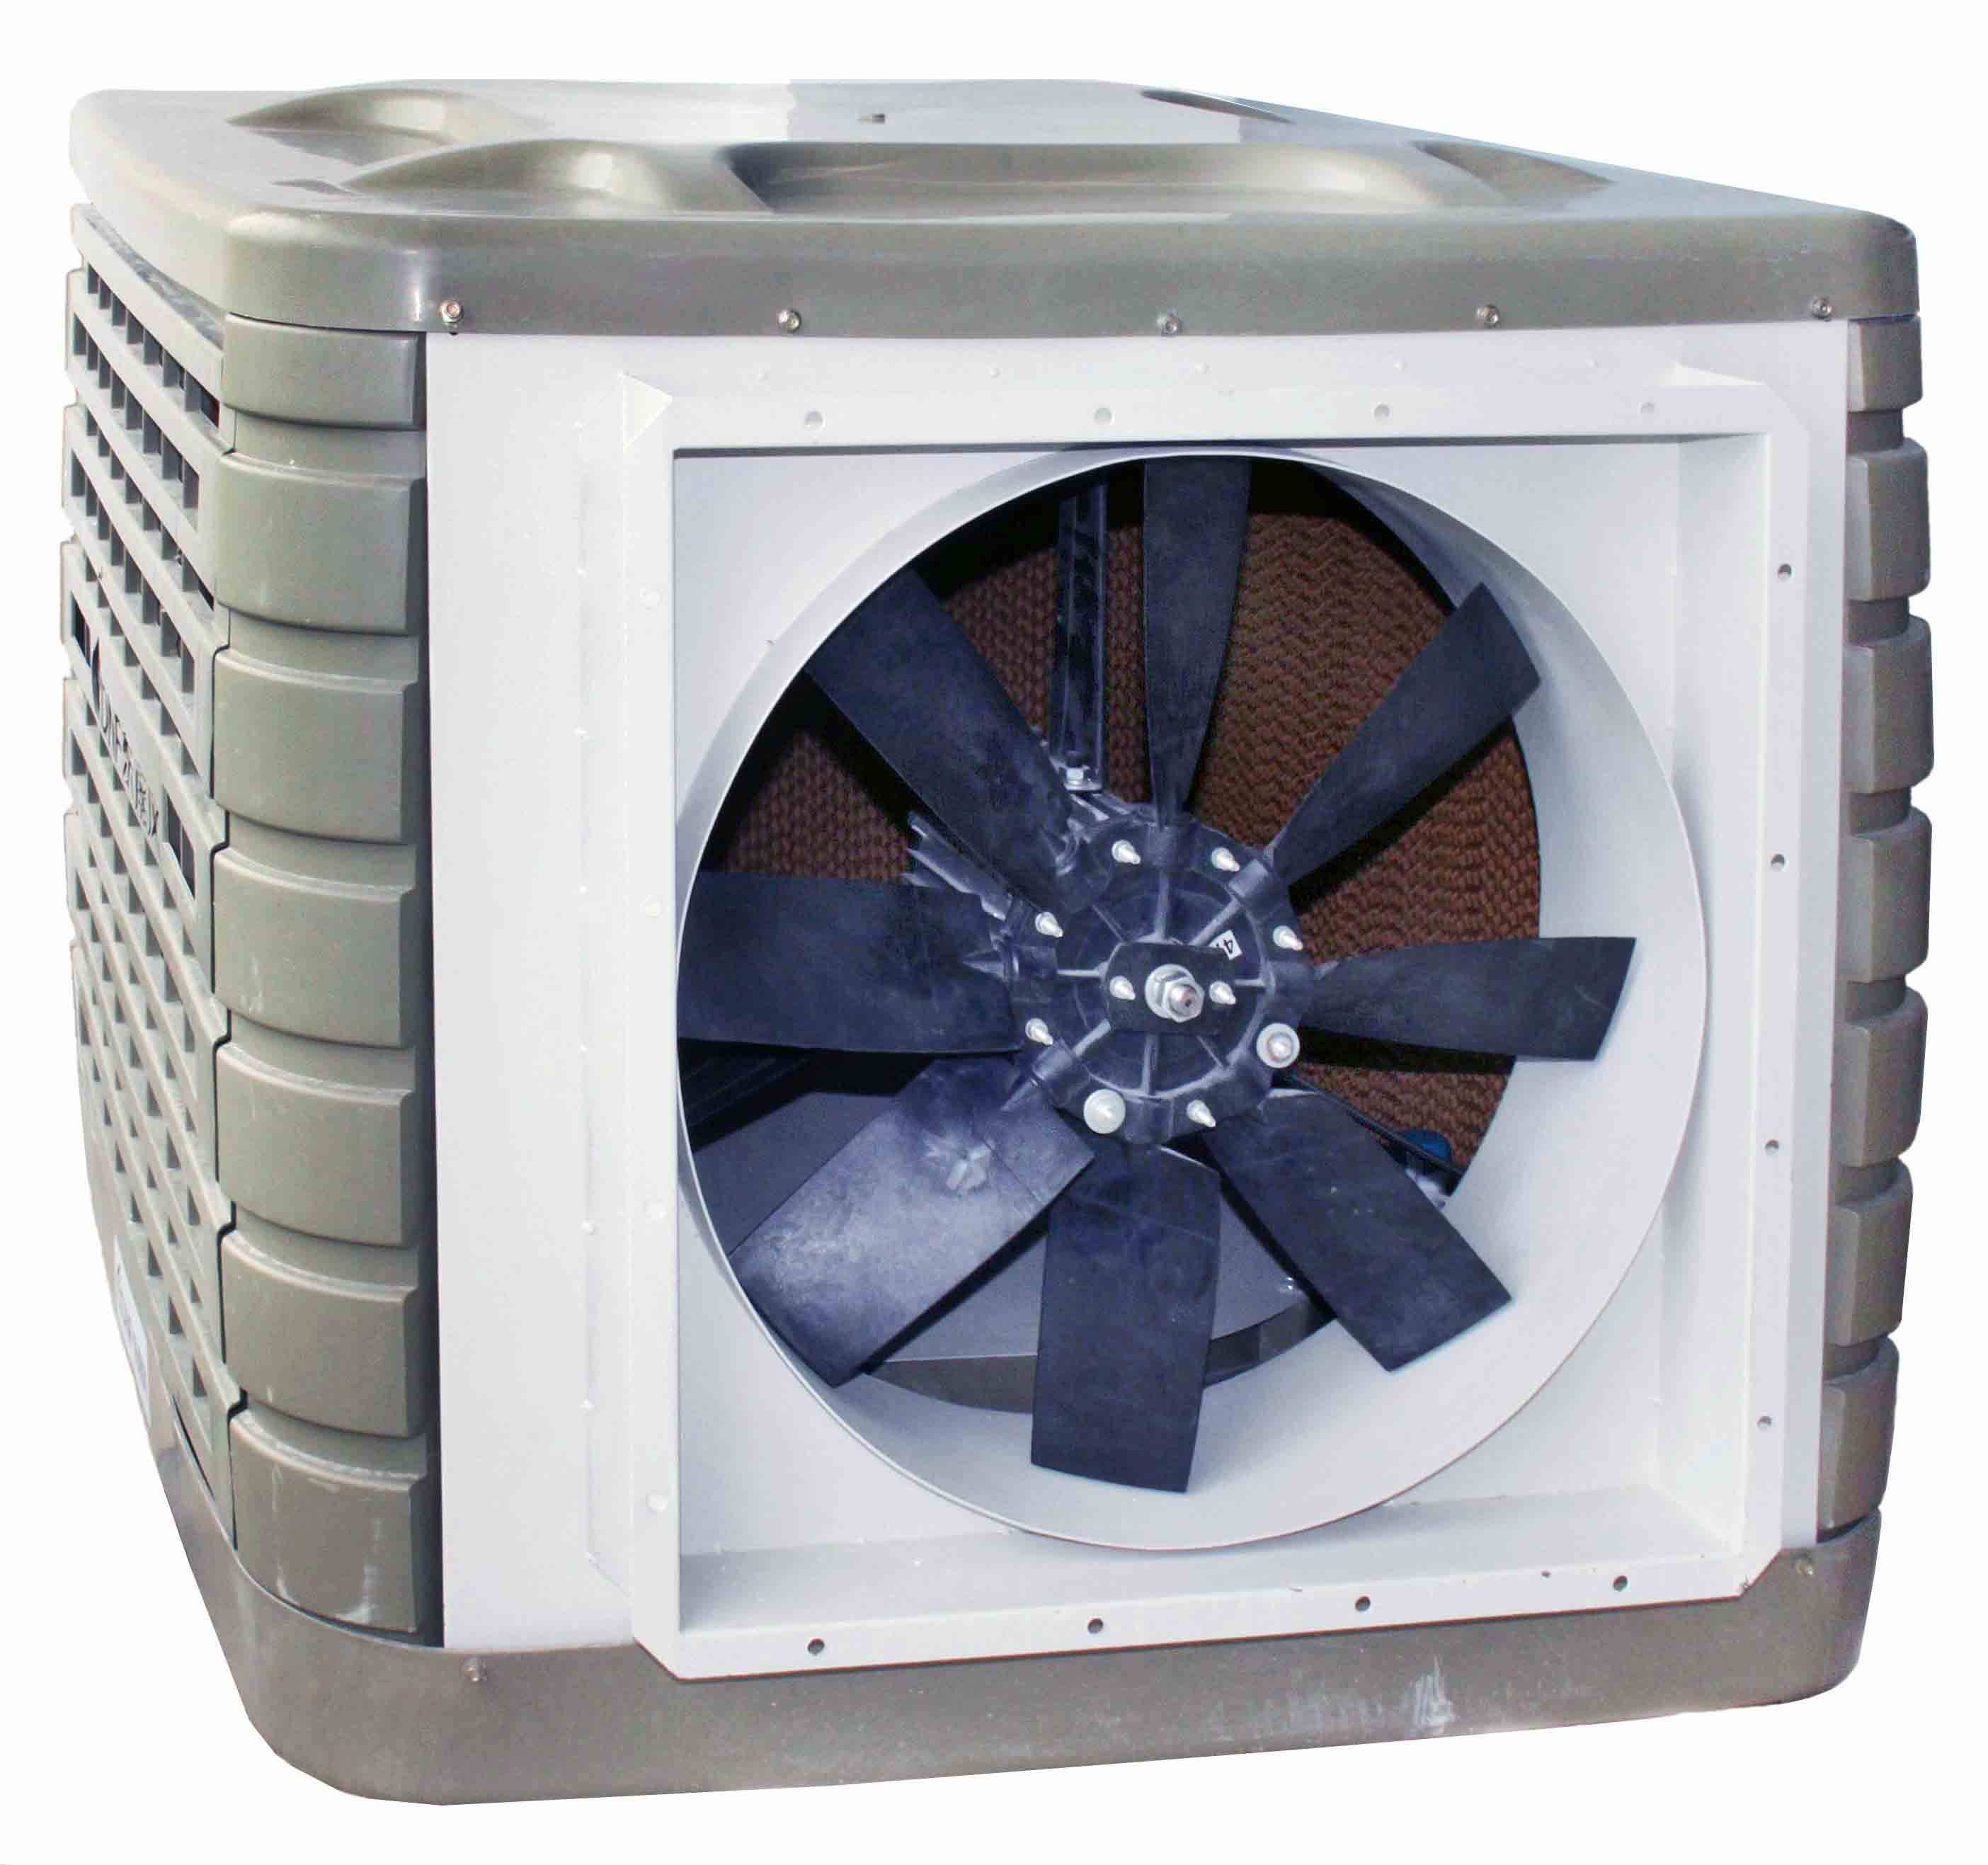 DNF branded evaporative air cooler model TY-DNF